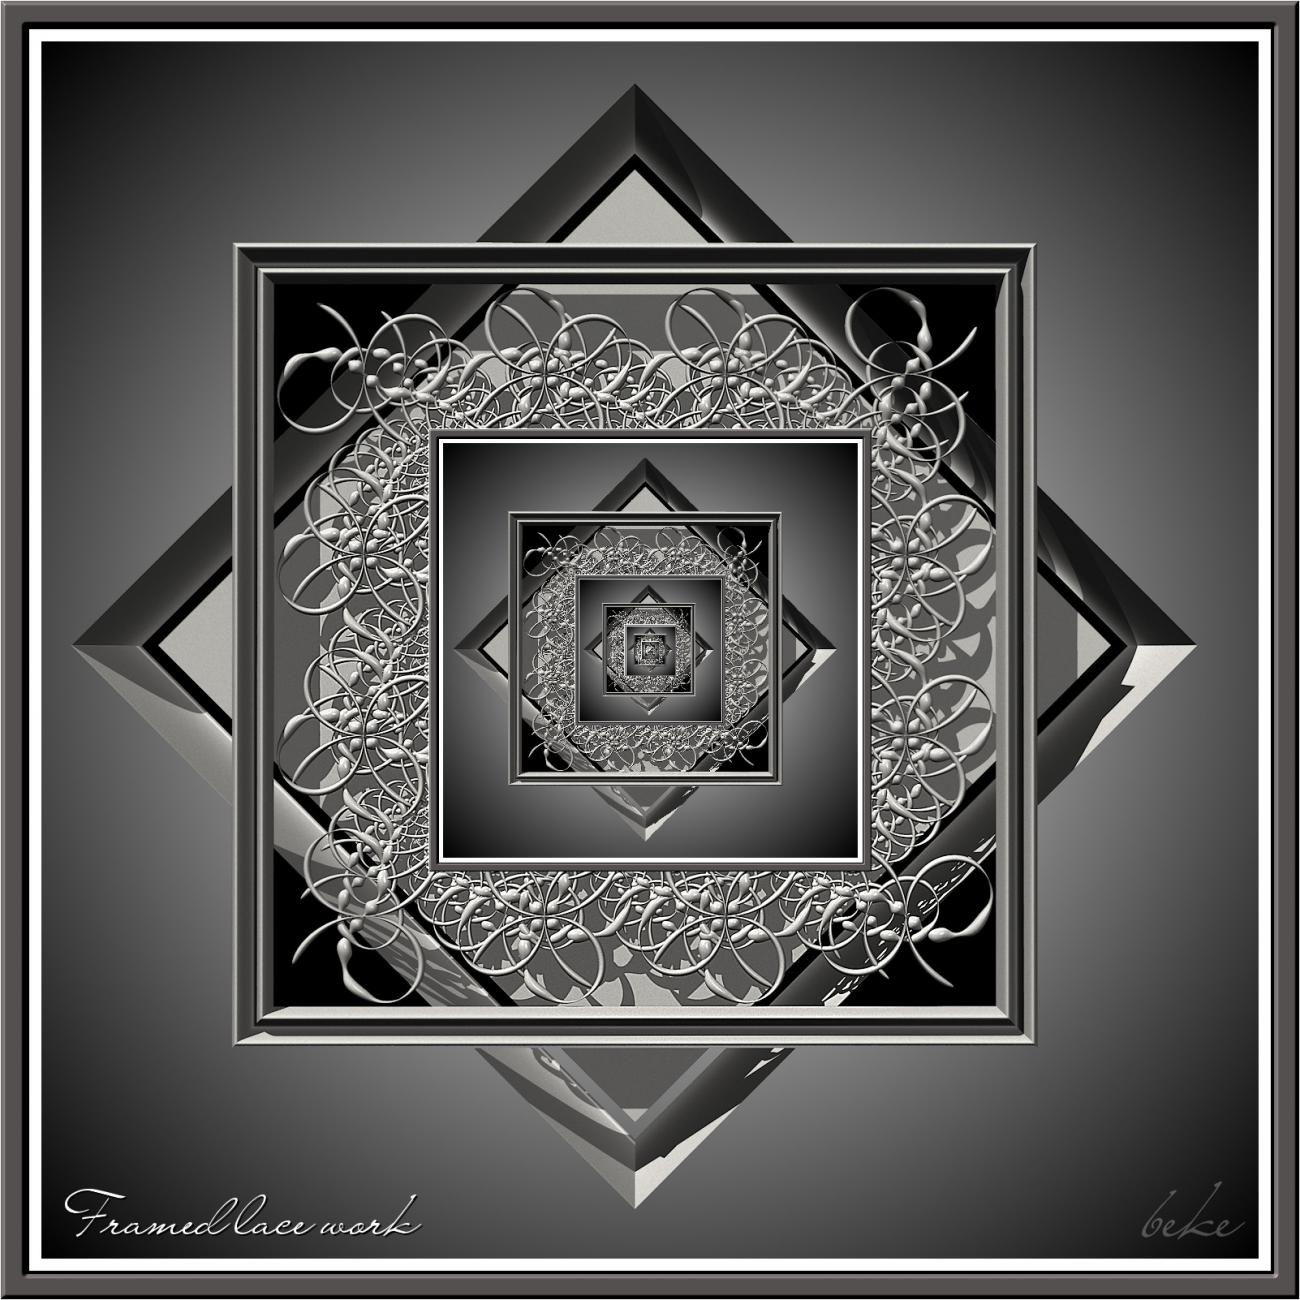 Framed lace work by fractalbeke